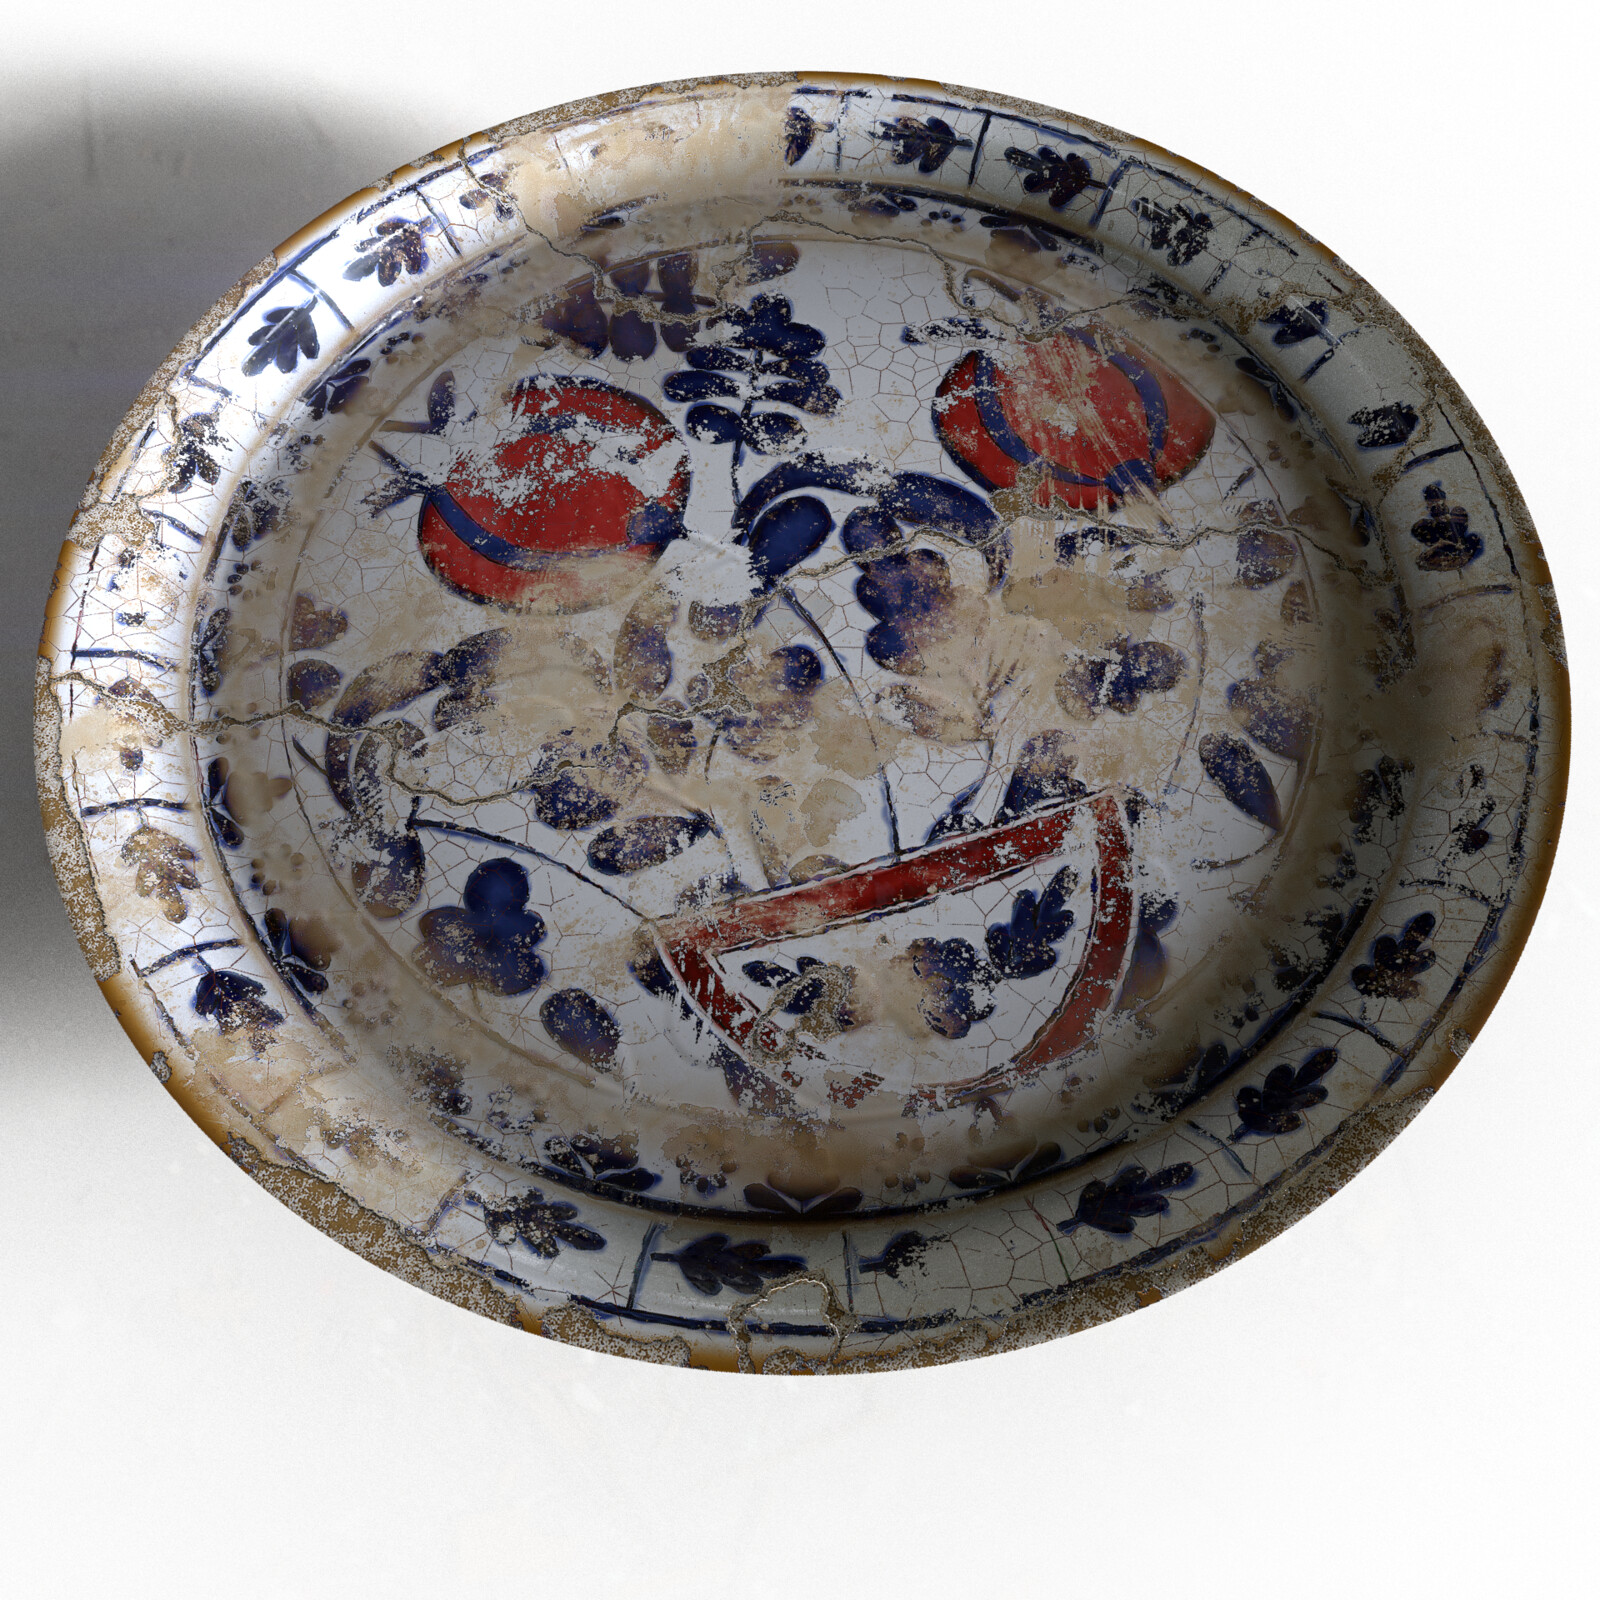 19th-century Ceramic Tile Plate, in bad condition, iRay render